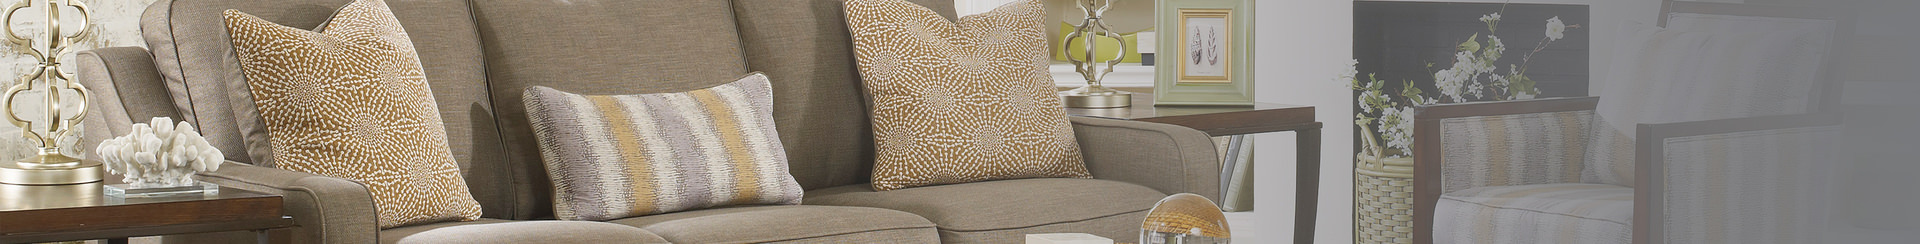 Brown Living Room Couches living room furniture – sofas & couches – hom furniture